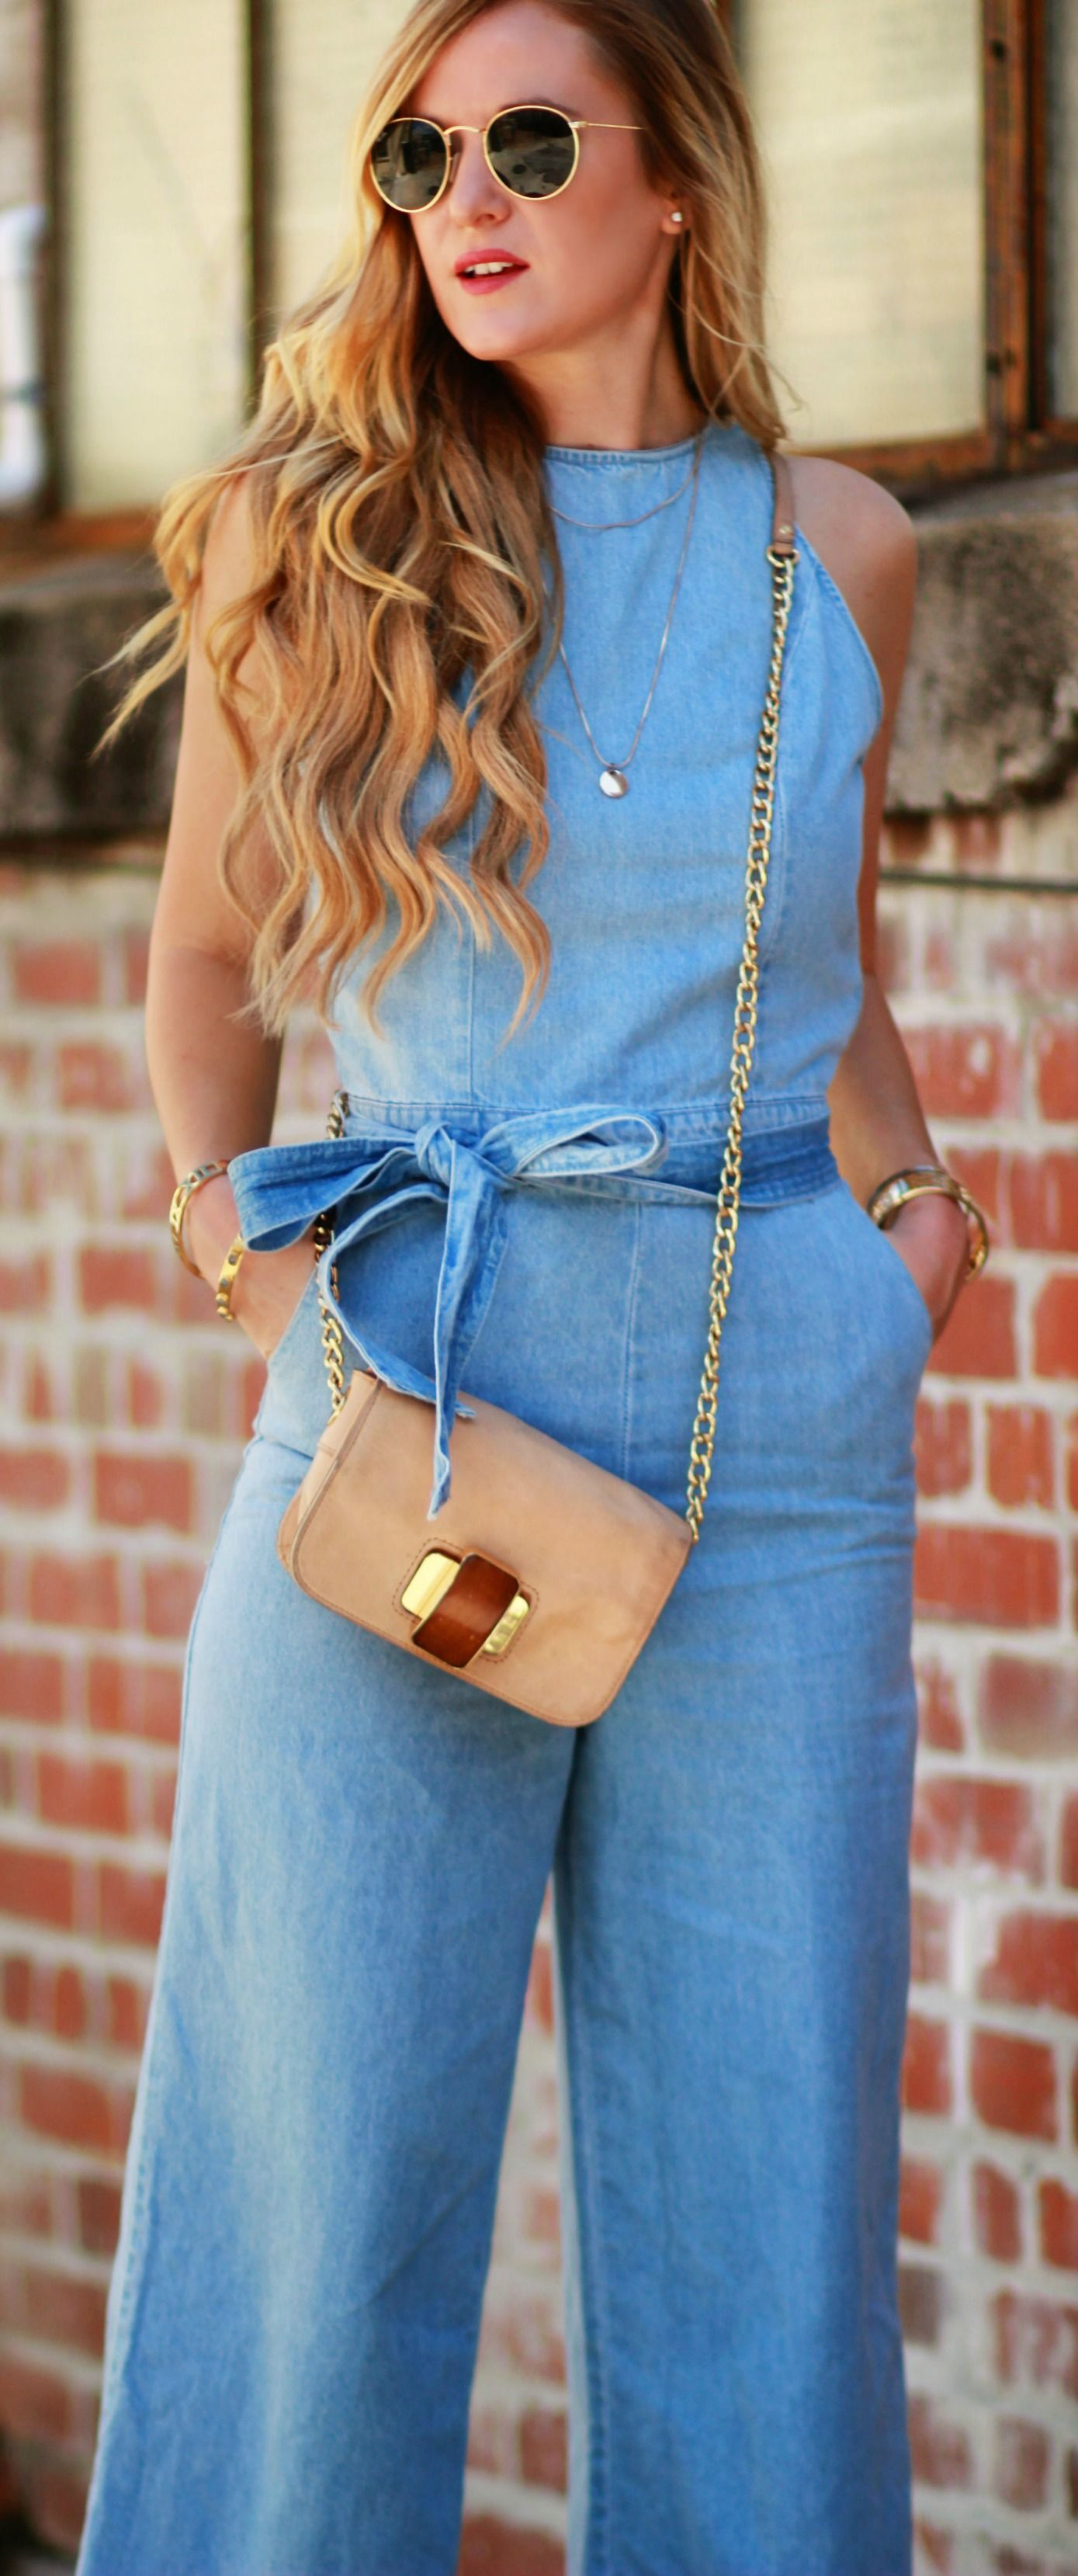 9cf87ae468d Florida fashion blogger styles a 70s inspired outfit with a denim culotte  jumpsuit